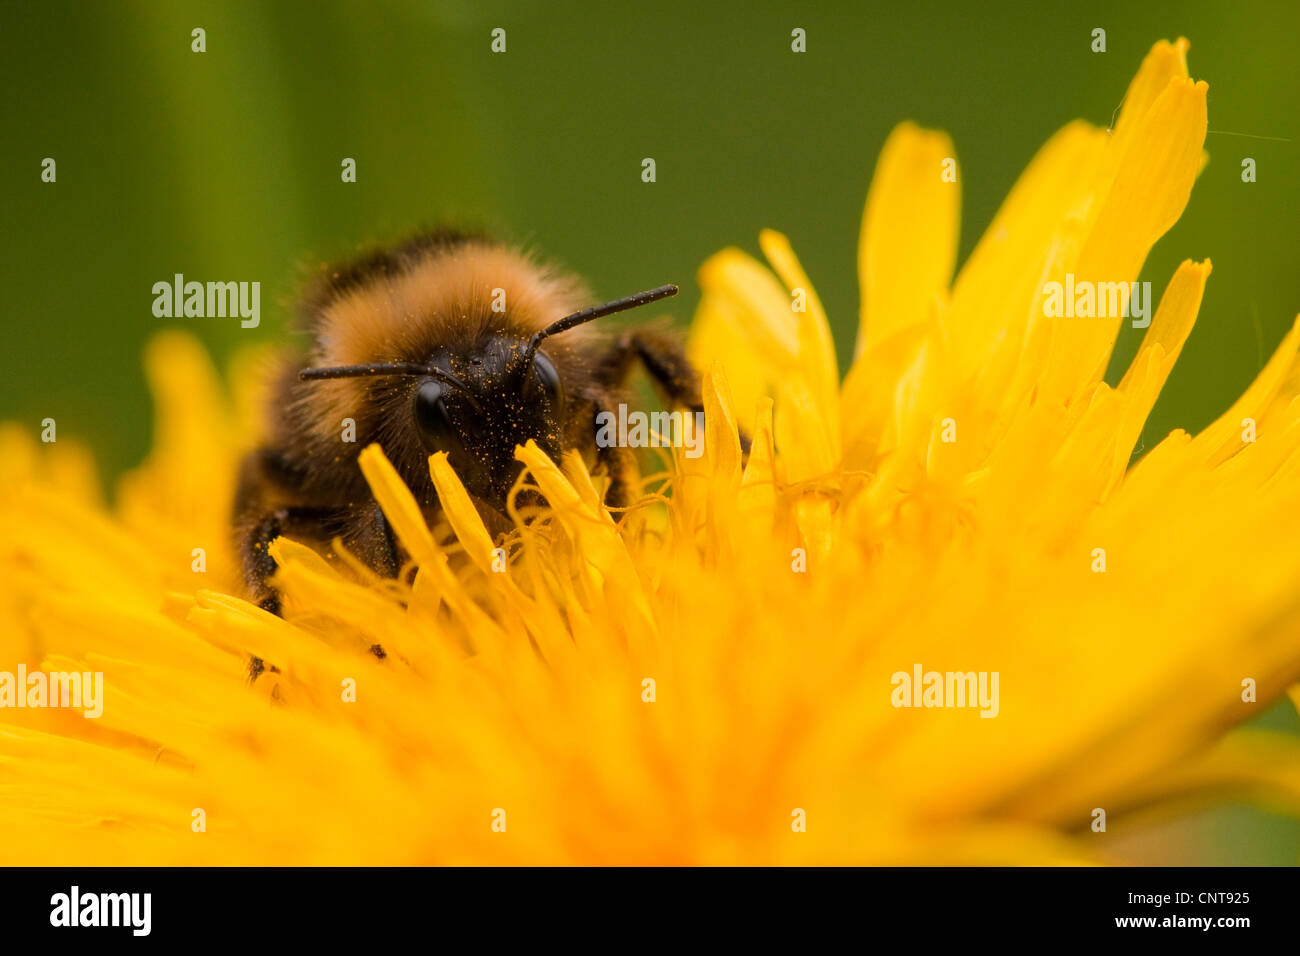 bumble bee on a dandelion flower, Germany, Rhineland-Palatinate - Stock Image